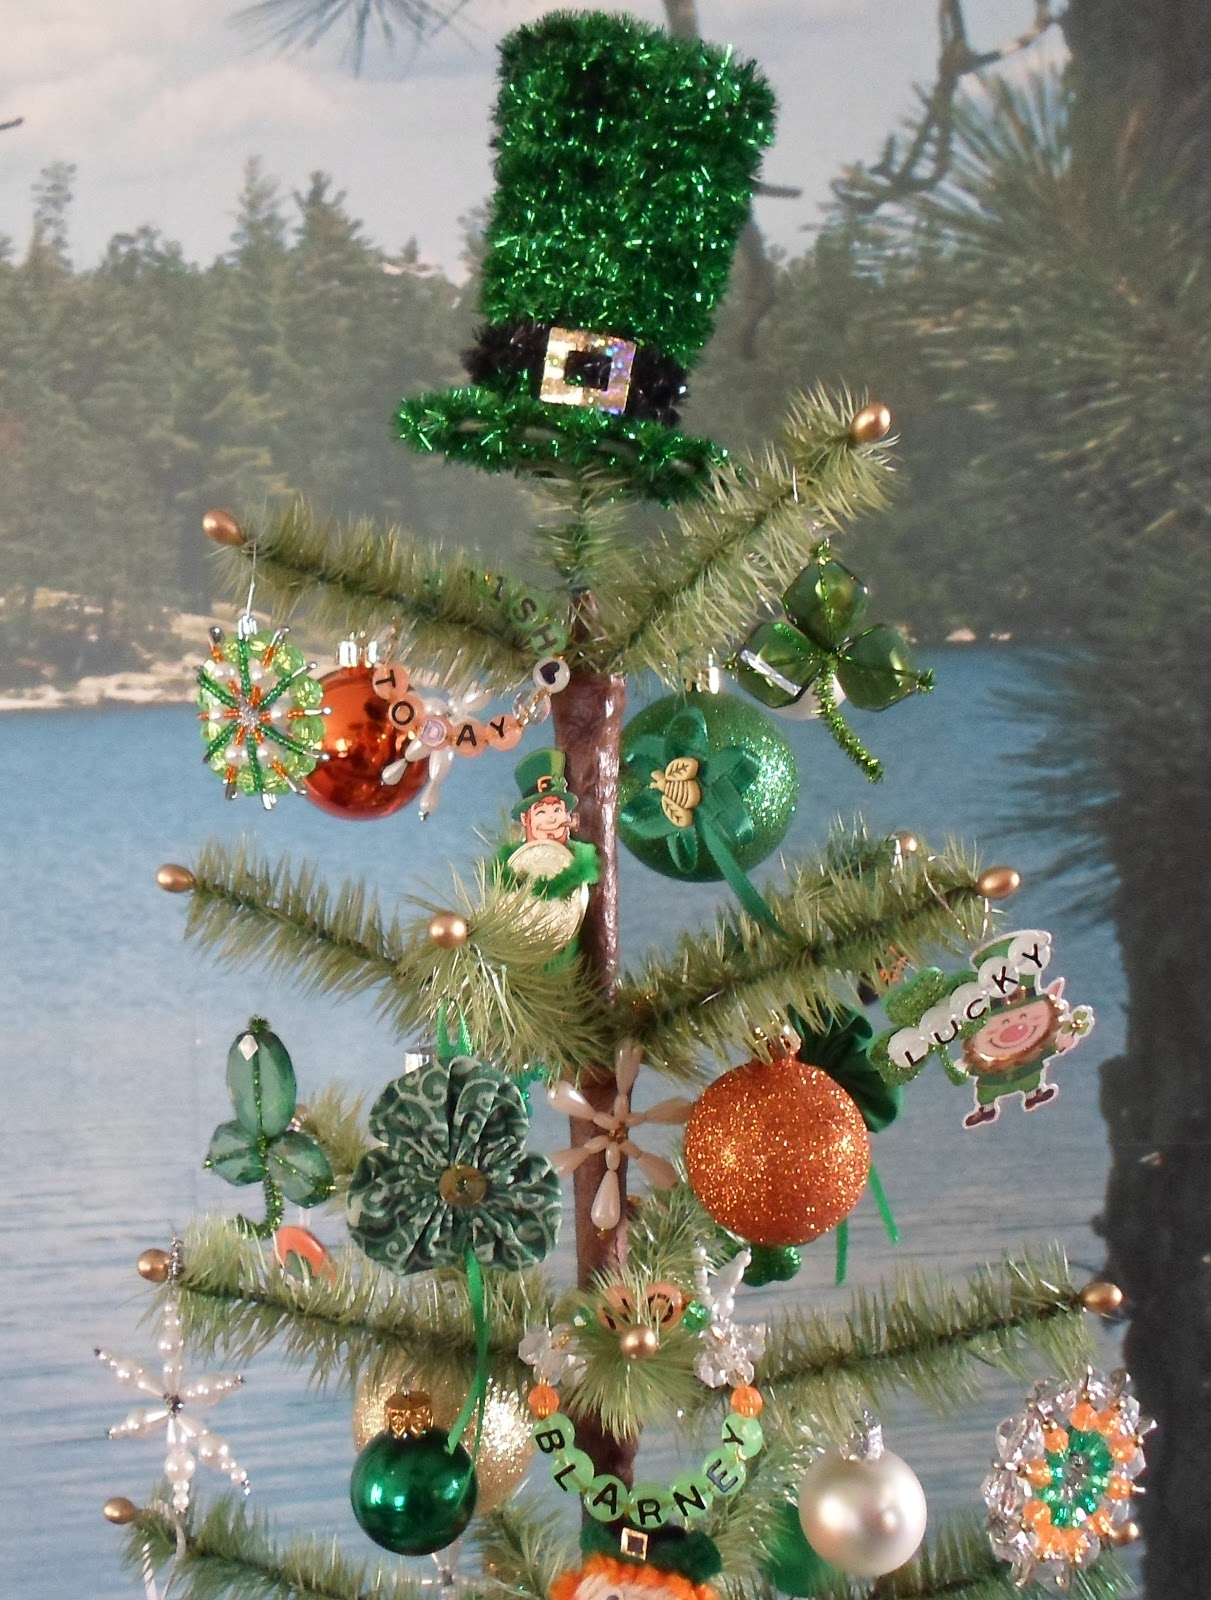 Happier Than A Pig In Mud: St. Patrick's Day Tree 2017